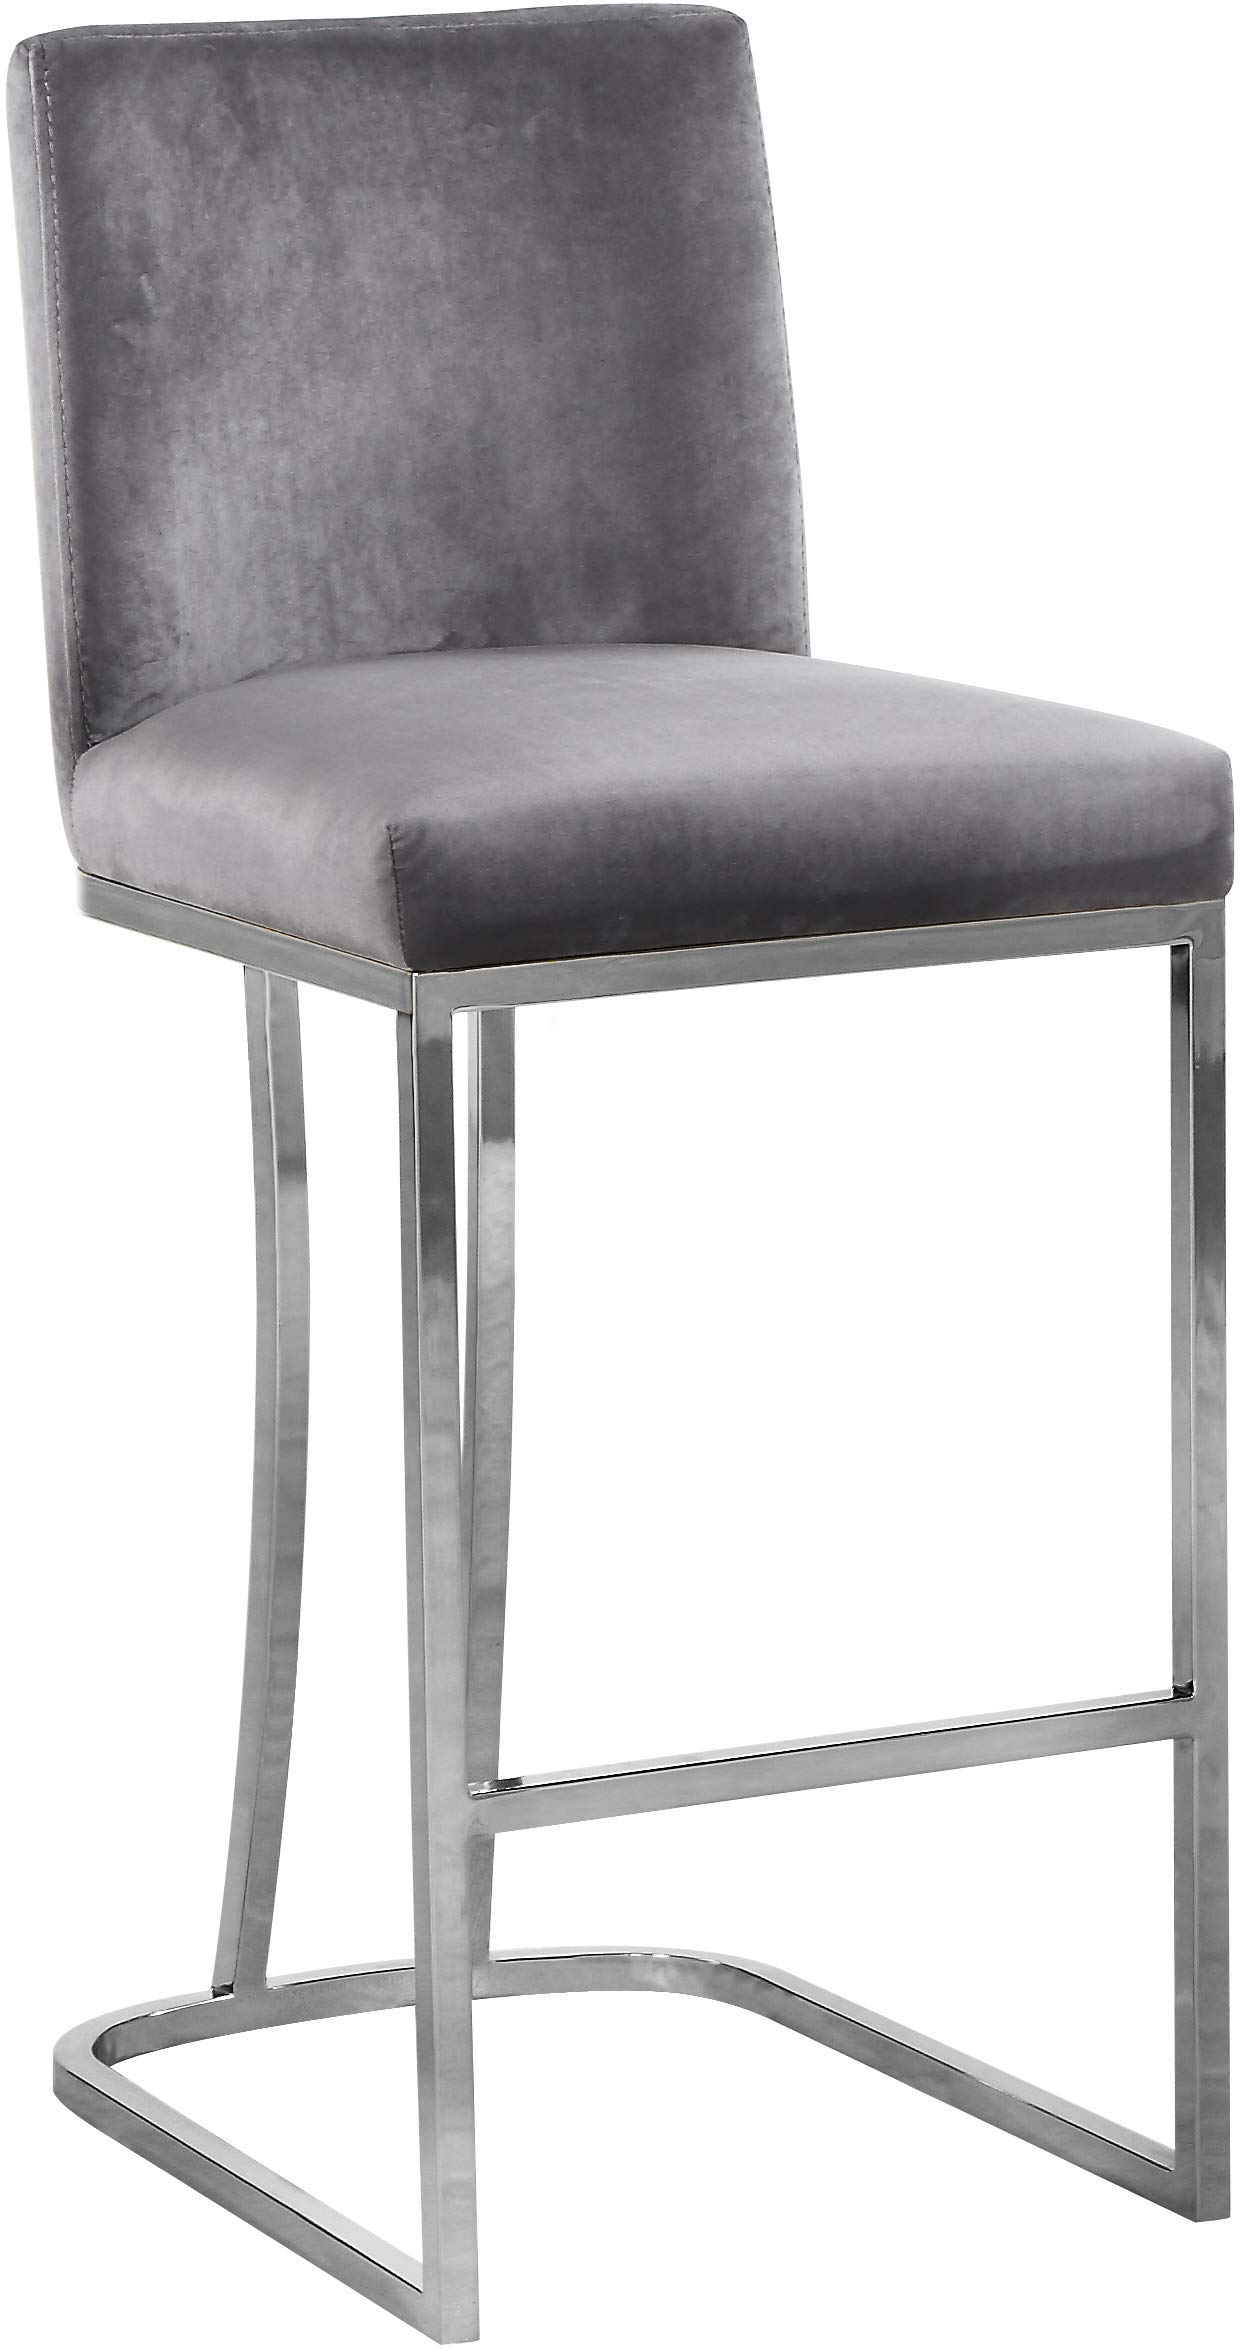 Meridian Furniture Heidi Collection Modern | Contemporary Grey Velvet Upholstered Counter Stool with Polished Chrome Metal Base, 16'' W x 19.5'' D x 36.5'' H, by Meridian Furniture